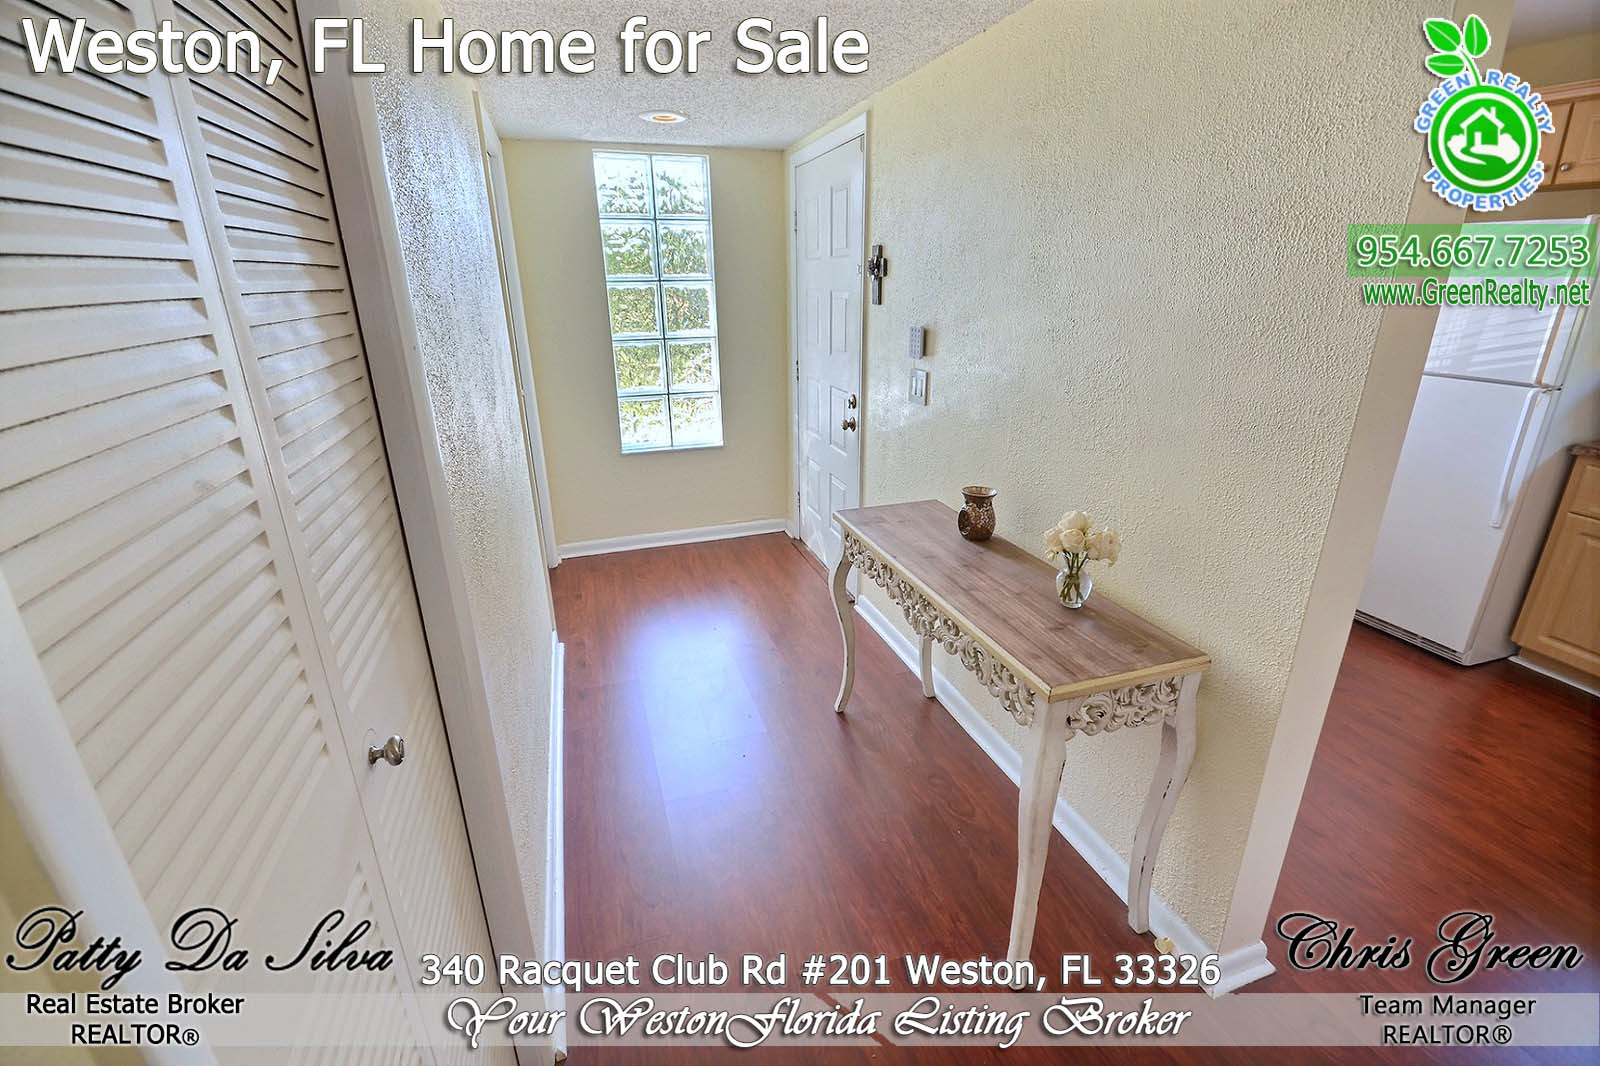 4 Patty Da Silva Sells Weston Homes